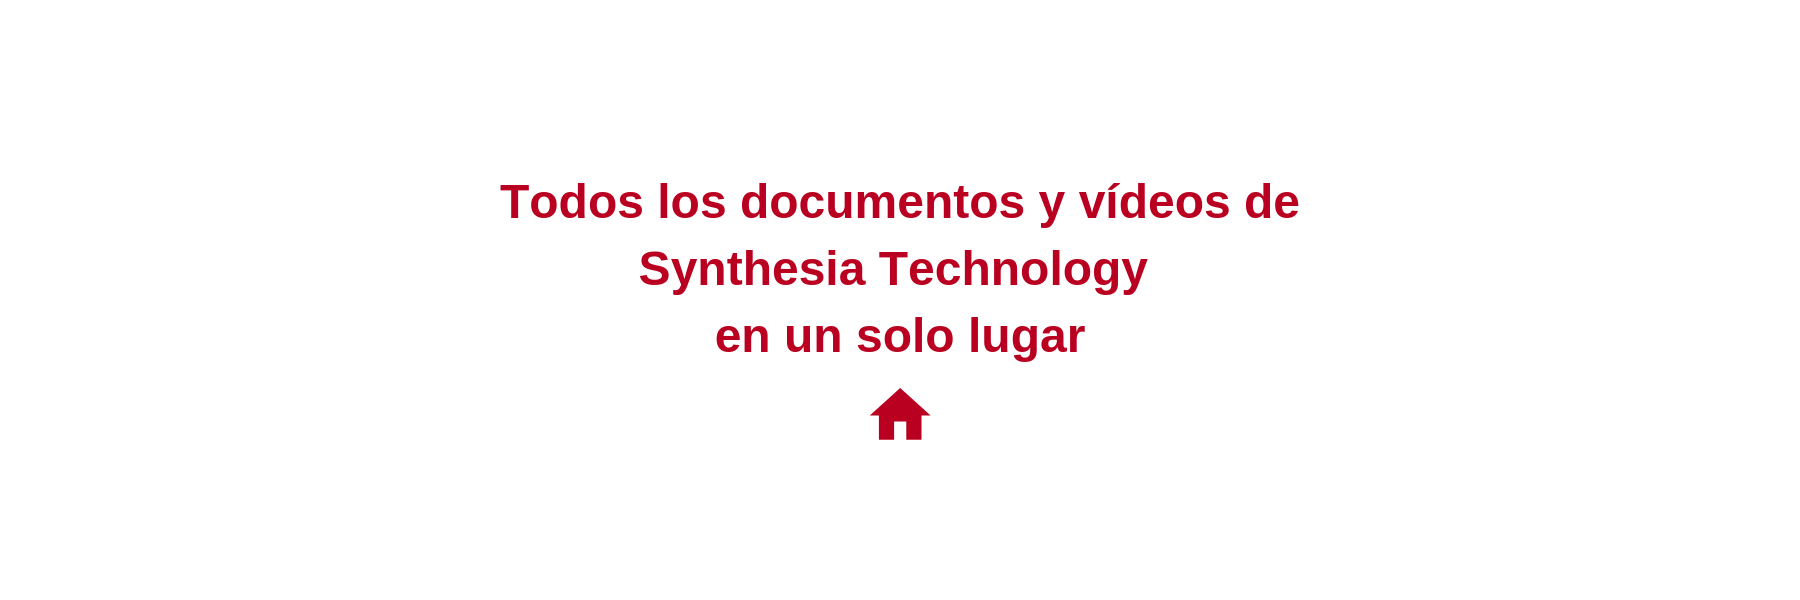 Todos los documentos y vídeos de Synthesia Technology en un solo lugar (3)